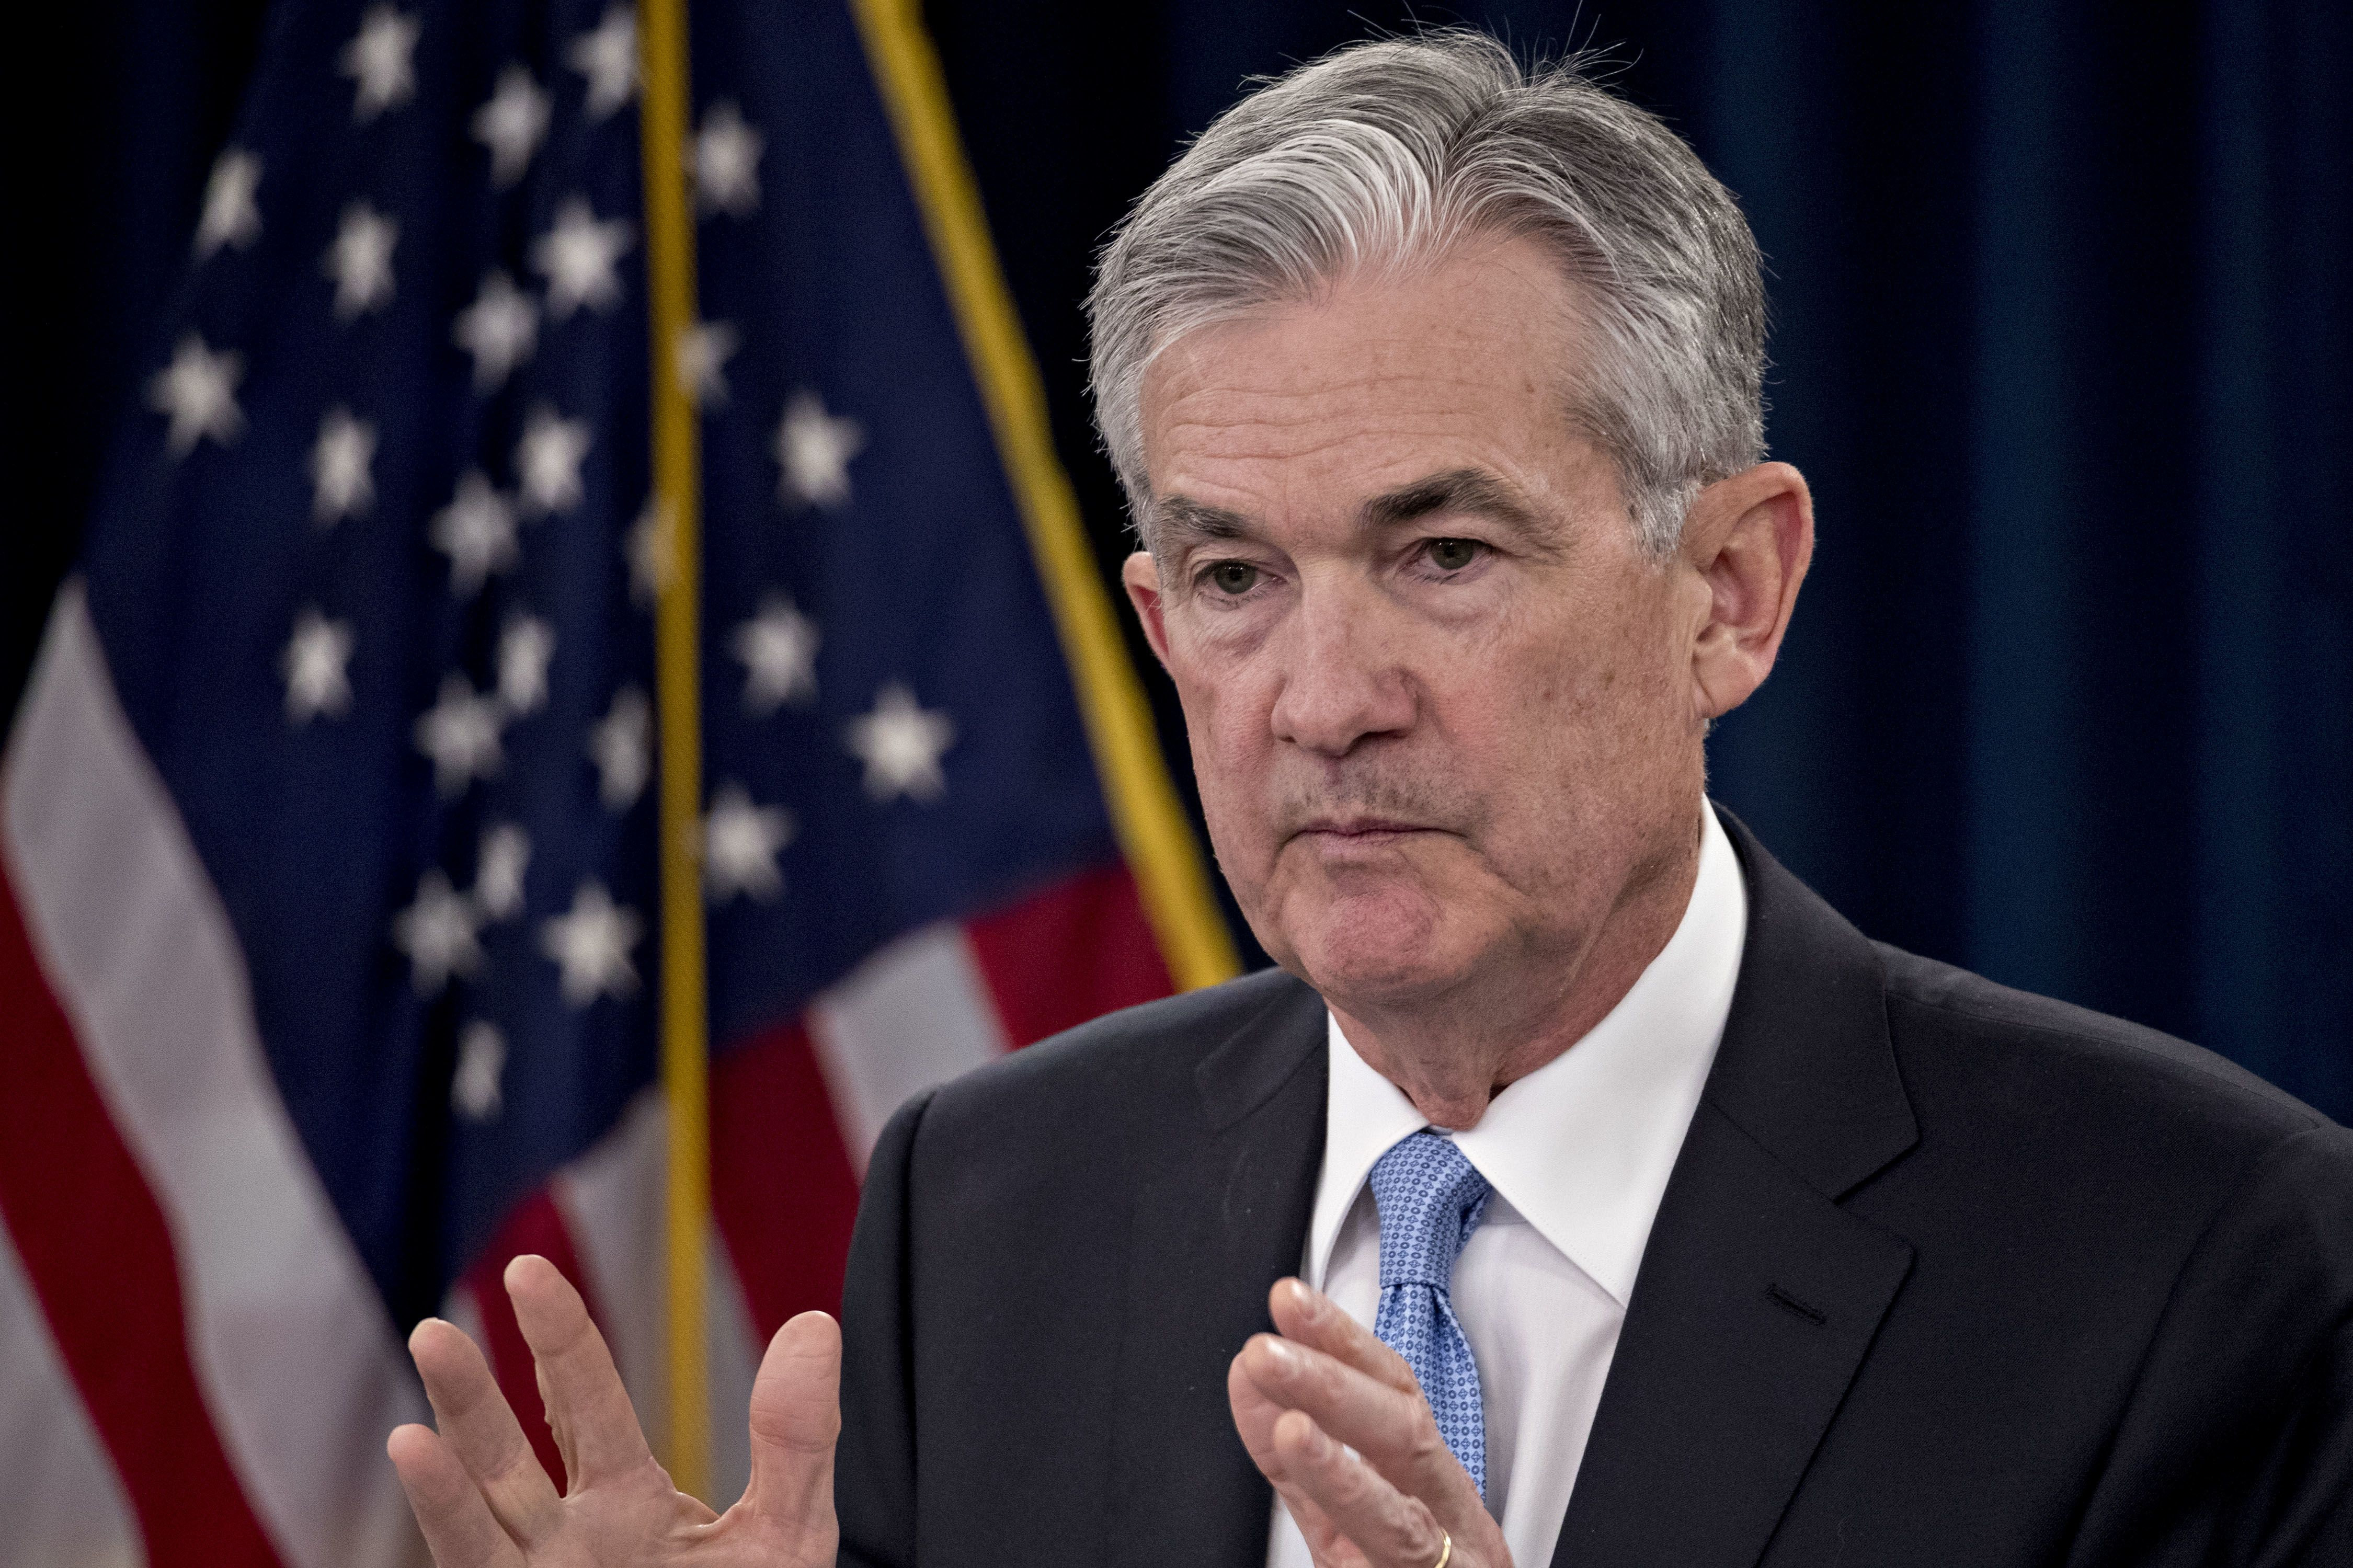 Powell will try not to draw ire of Trump or rock markets after Fed meeting Wednesday